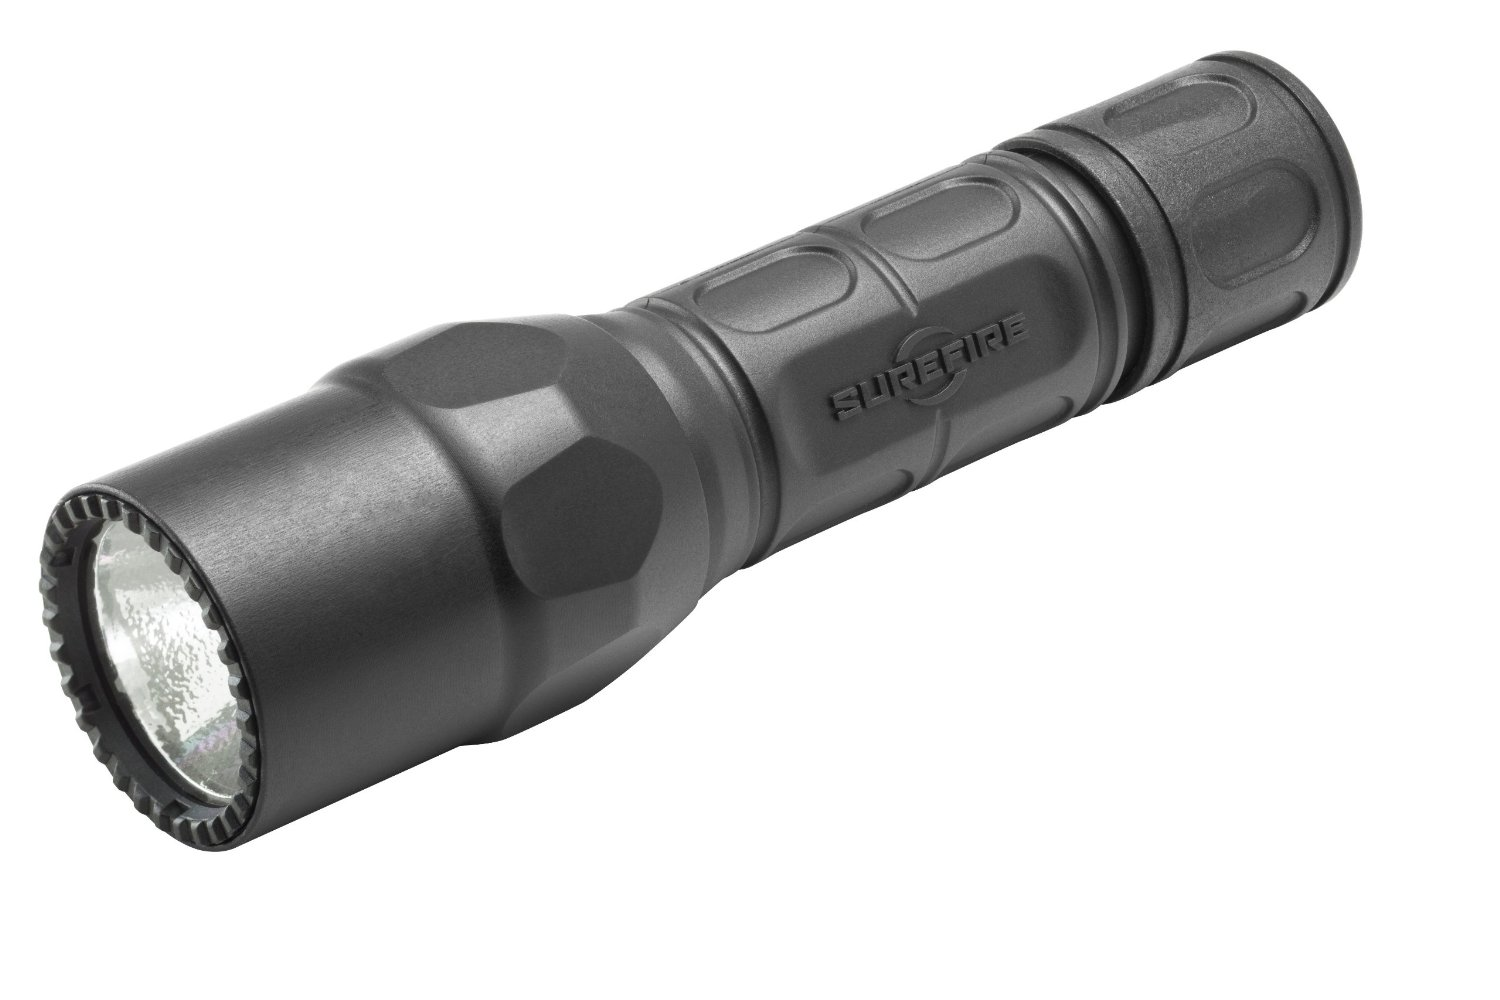 SureFire G2X Pro Dual Output LED Flashlight